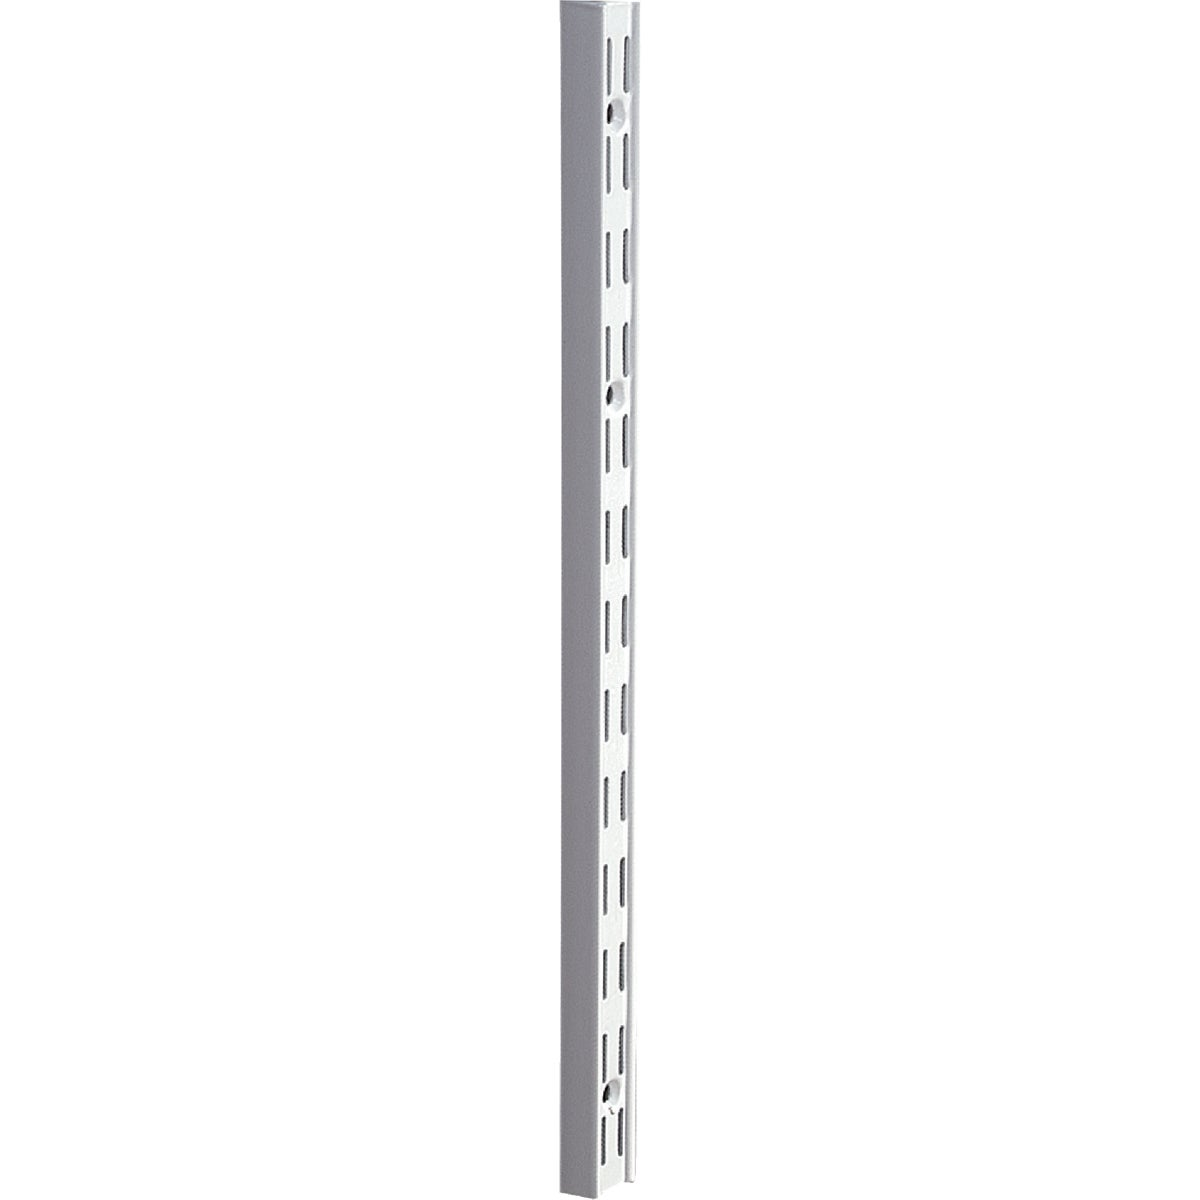 "16.5"" WHT SHELF STANDARD - 82WH16.5 by Knape & Vogt Mfg Co"